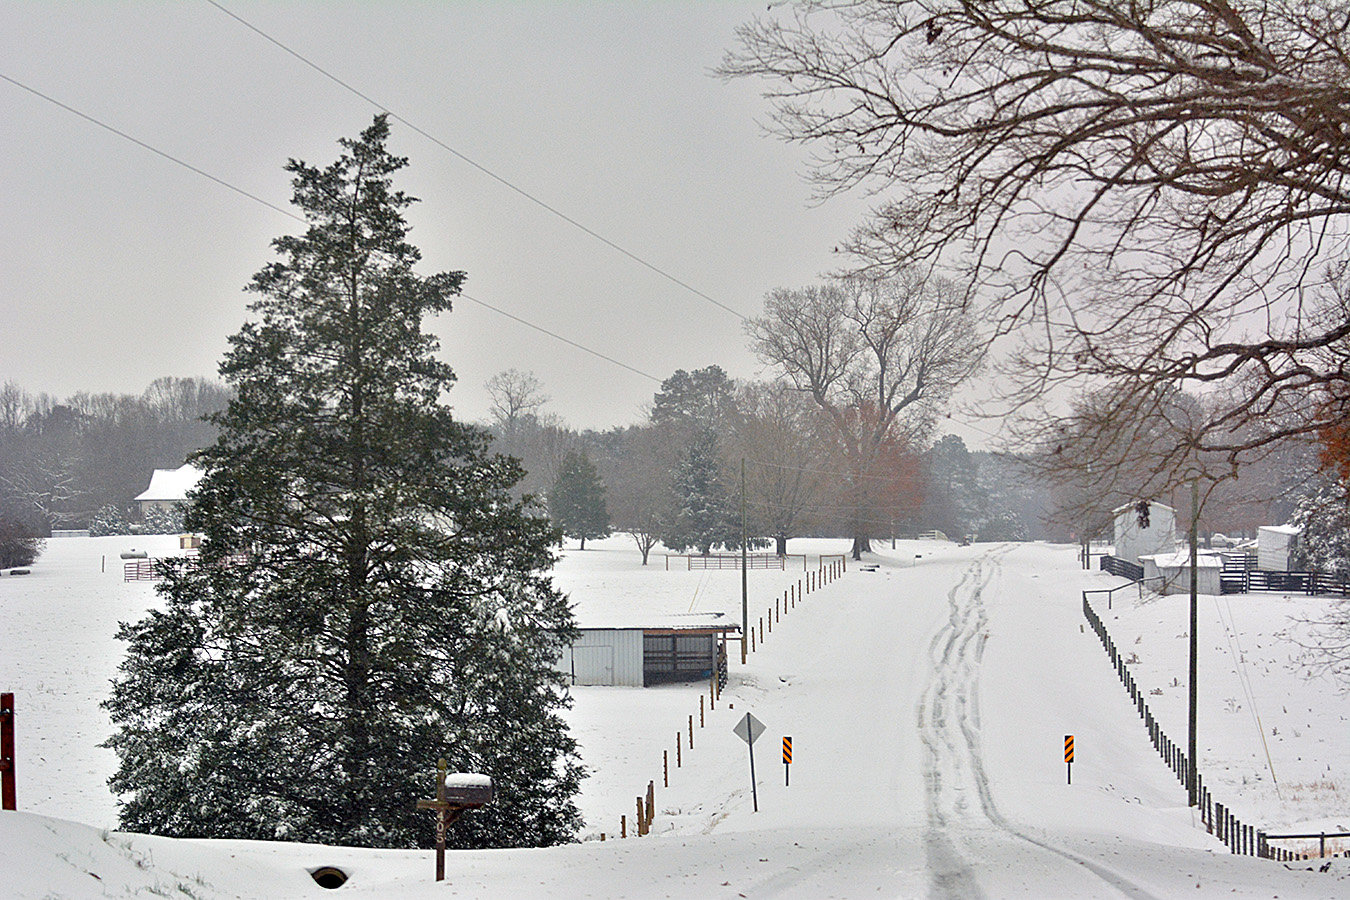 The major highways were noisy as motorists made their way down the road, and into the ditches. But Chatham rural roads were peaceful with very little traffic.